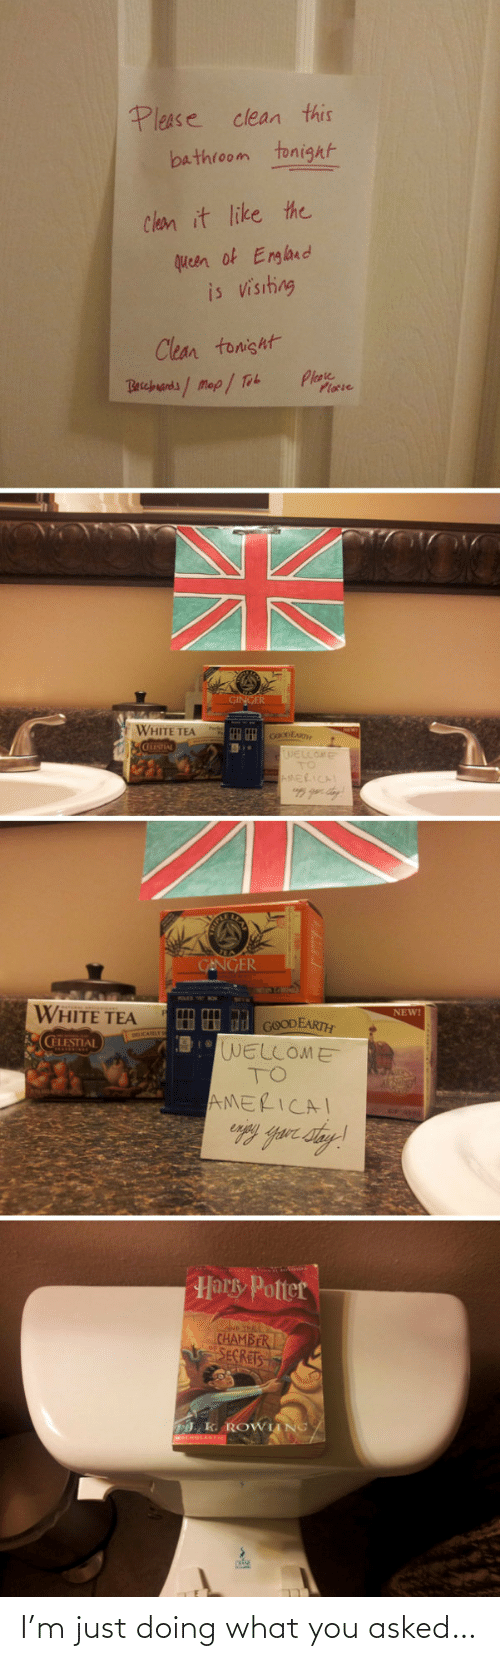 tea: Please clean this  bathroom tonight  Clean it like the  queen of England  is visiting  Clean tonisht  Plase  Plocie  Becbuands/Map/ Tob  GINGER  WHITE TEA  cOoDEAR  WELLOME  TO  AMERICAL  GENGER  WHITE TEA  NEW!  HH d GOODEARTH  WELLOME  TO  CELESTIAL  AMERICAI  Harky Potter  D THE  CHAMBER  SECRETS  . K. ROWIING/ I'm just doing what you asked…